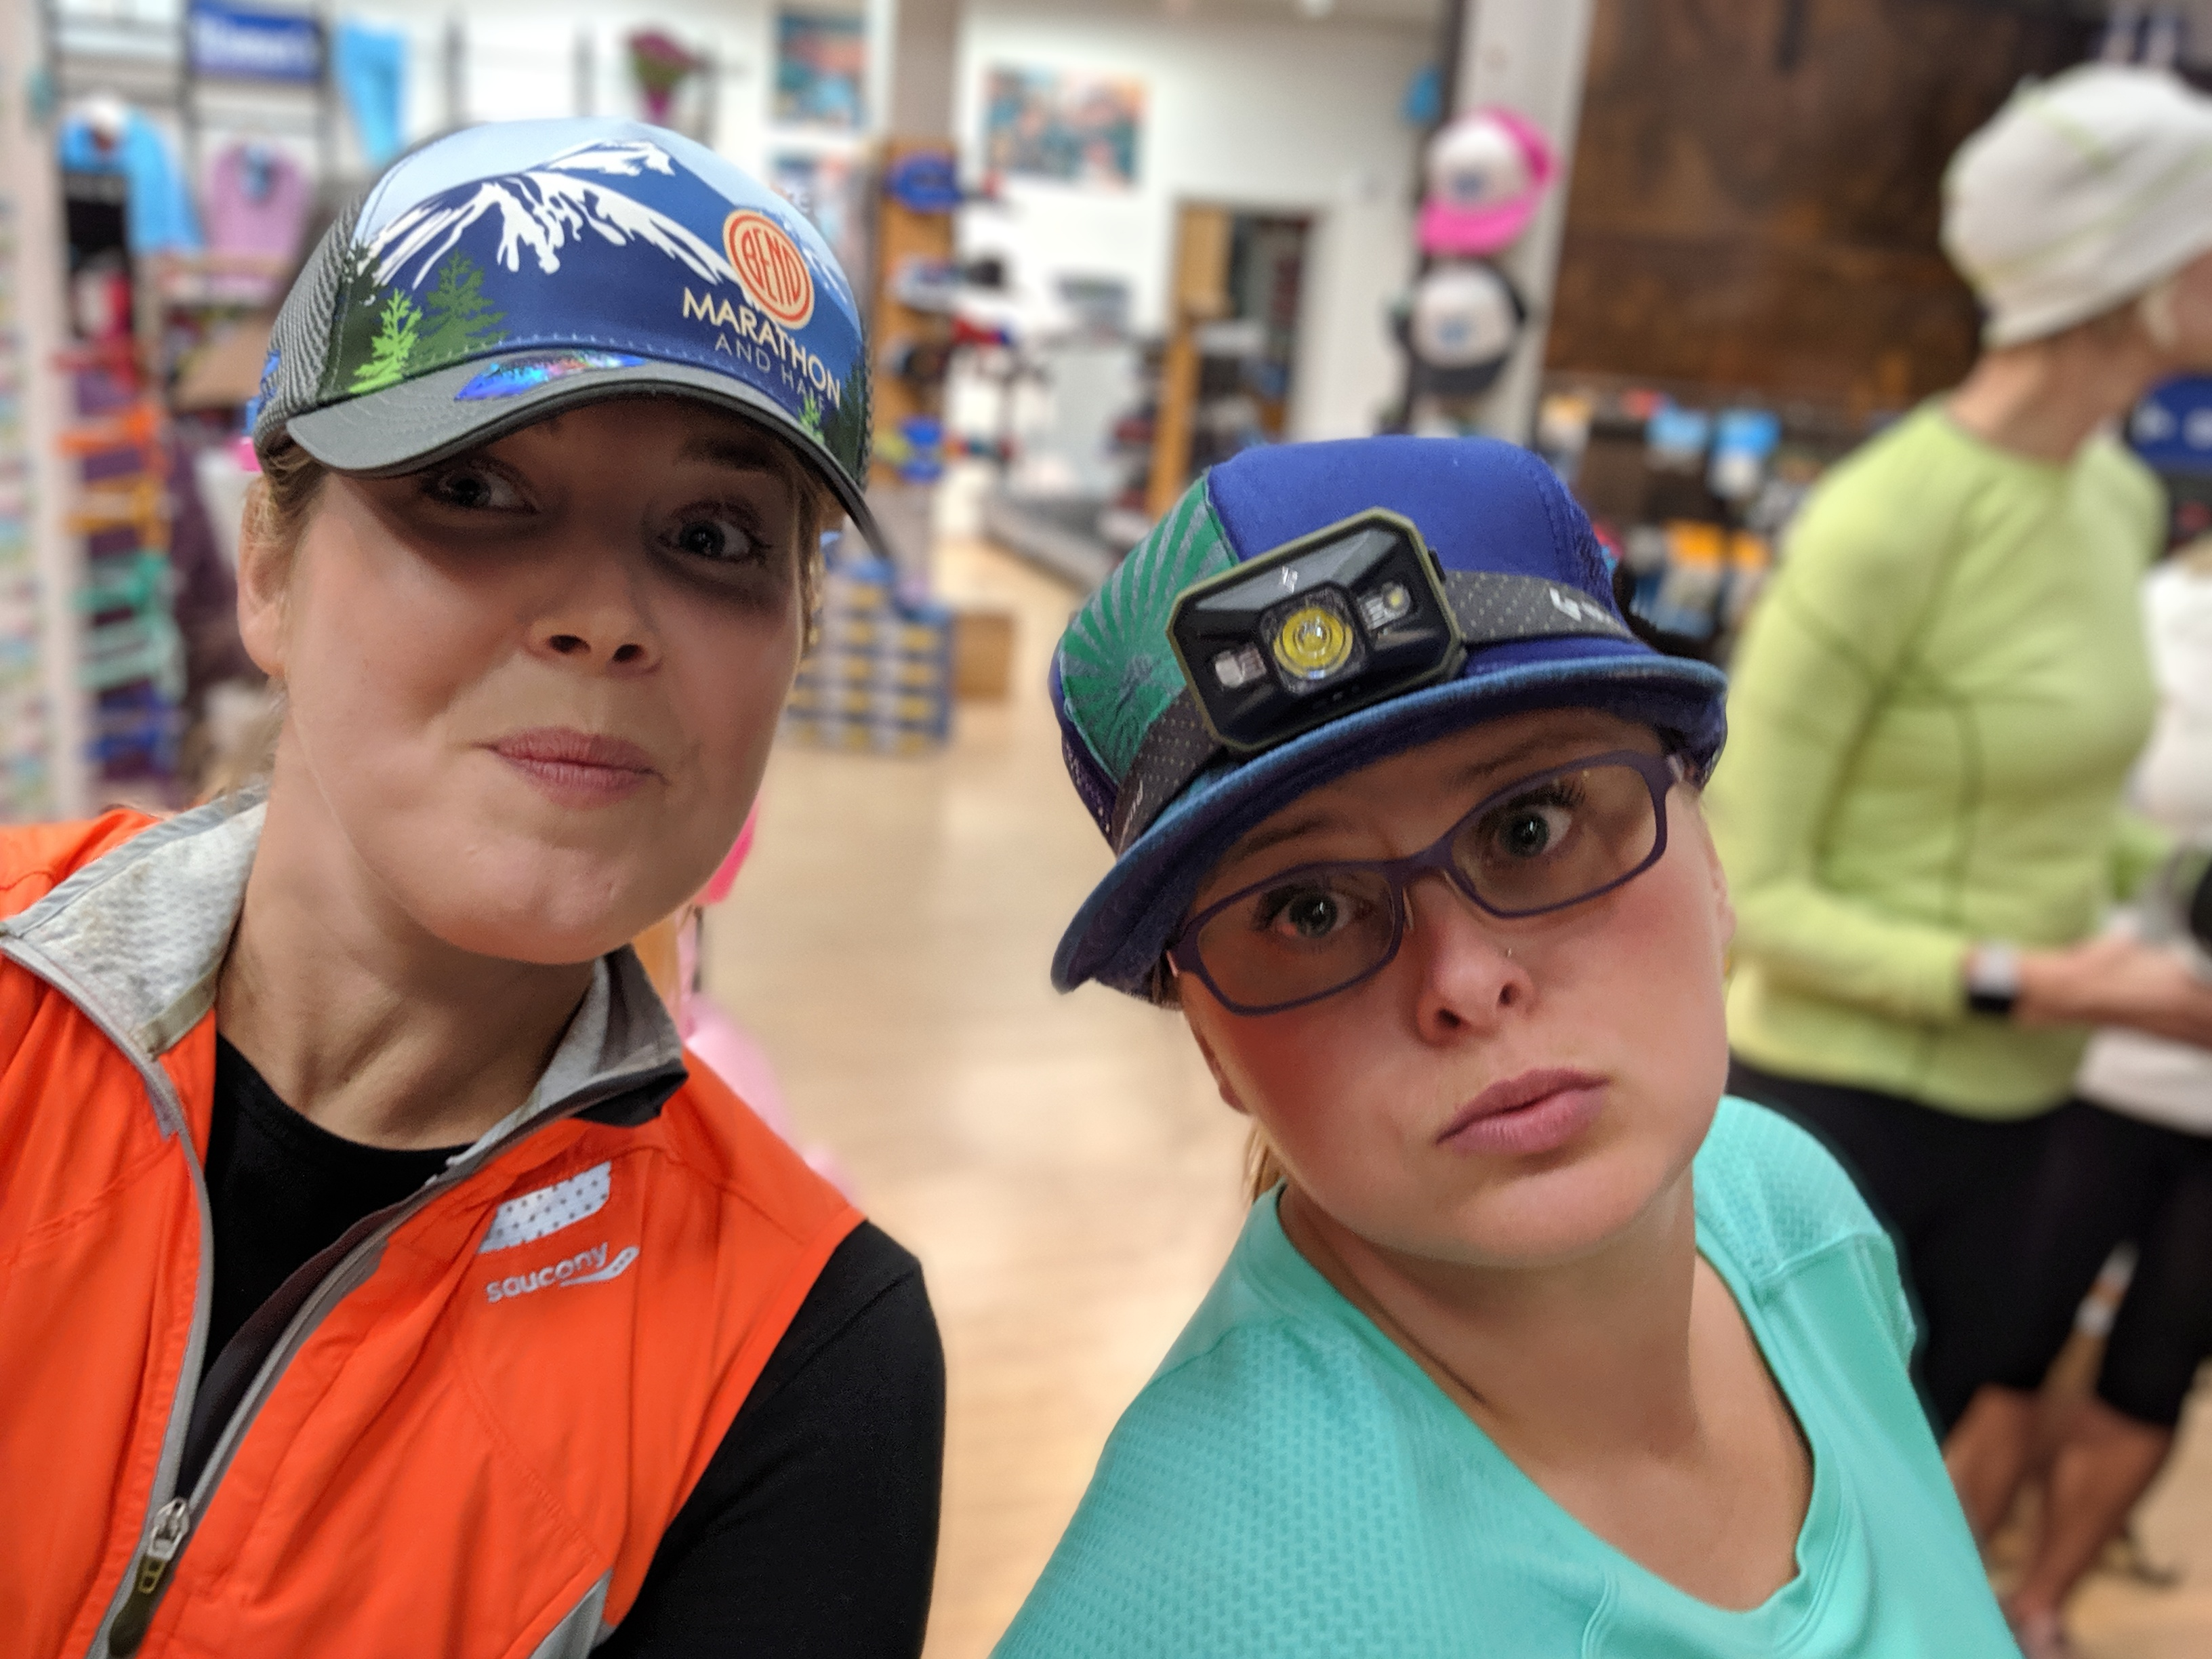 Erin Jules marathon hats FootZone Oct 2019